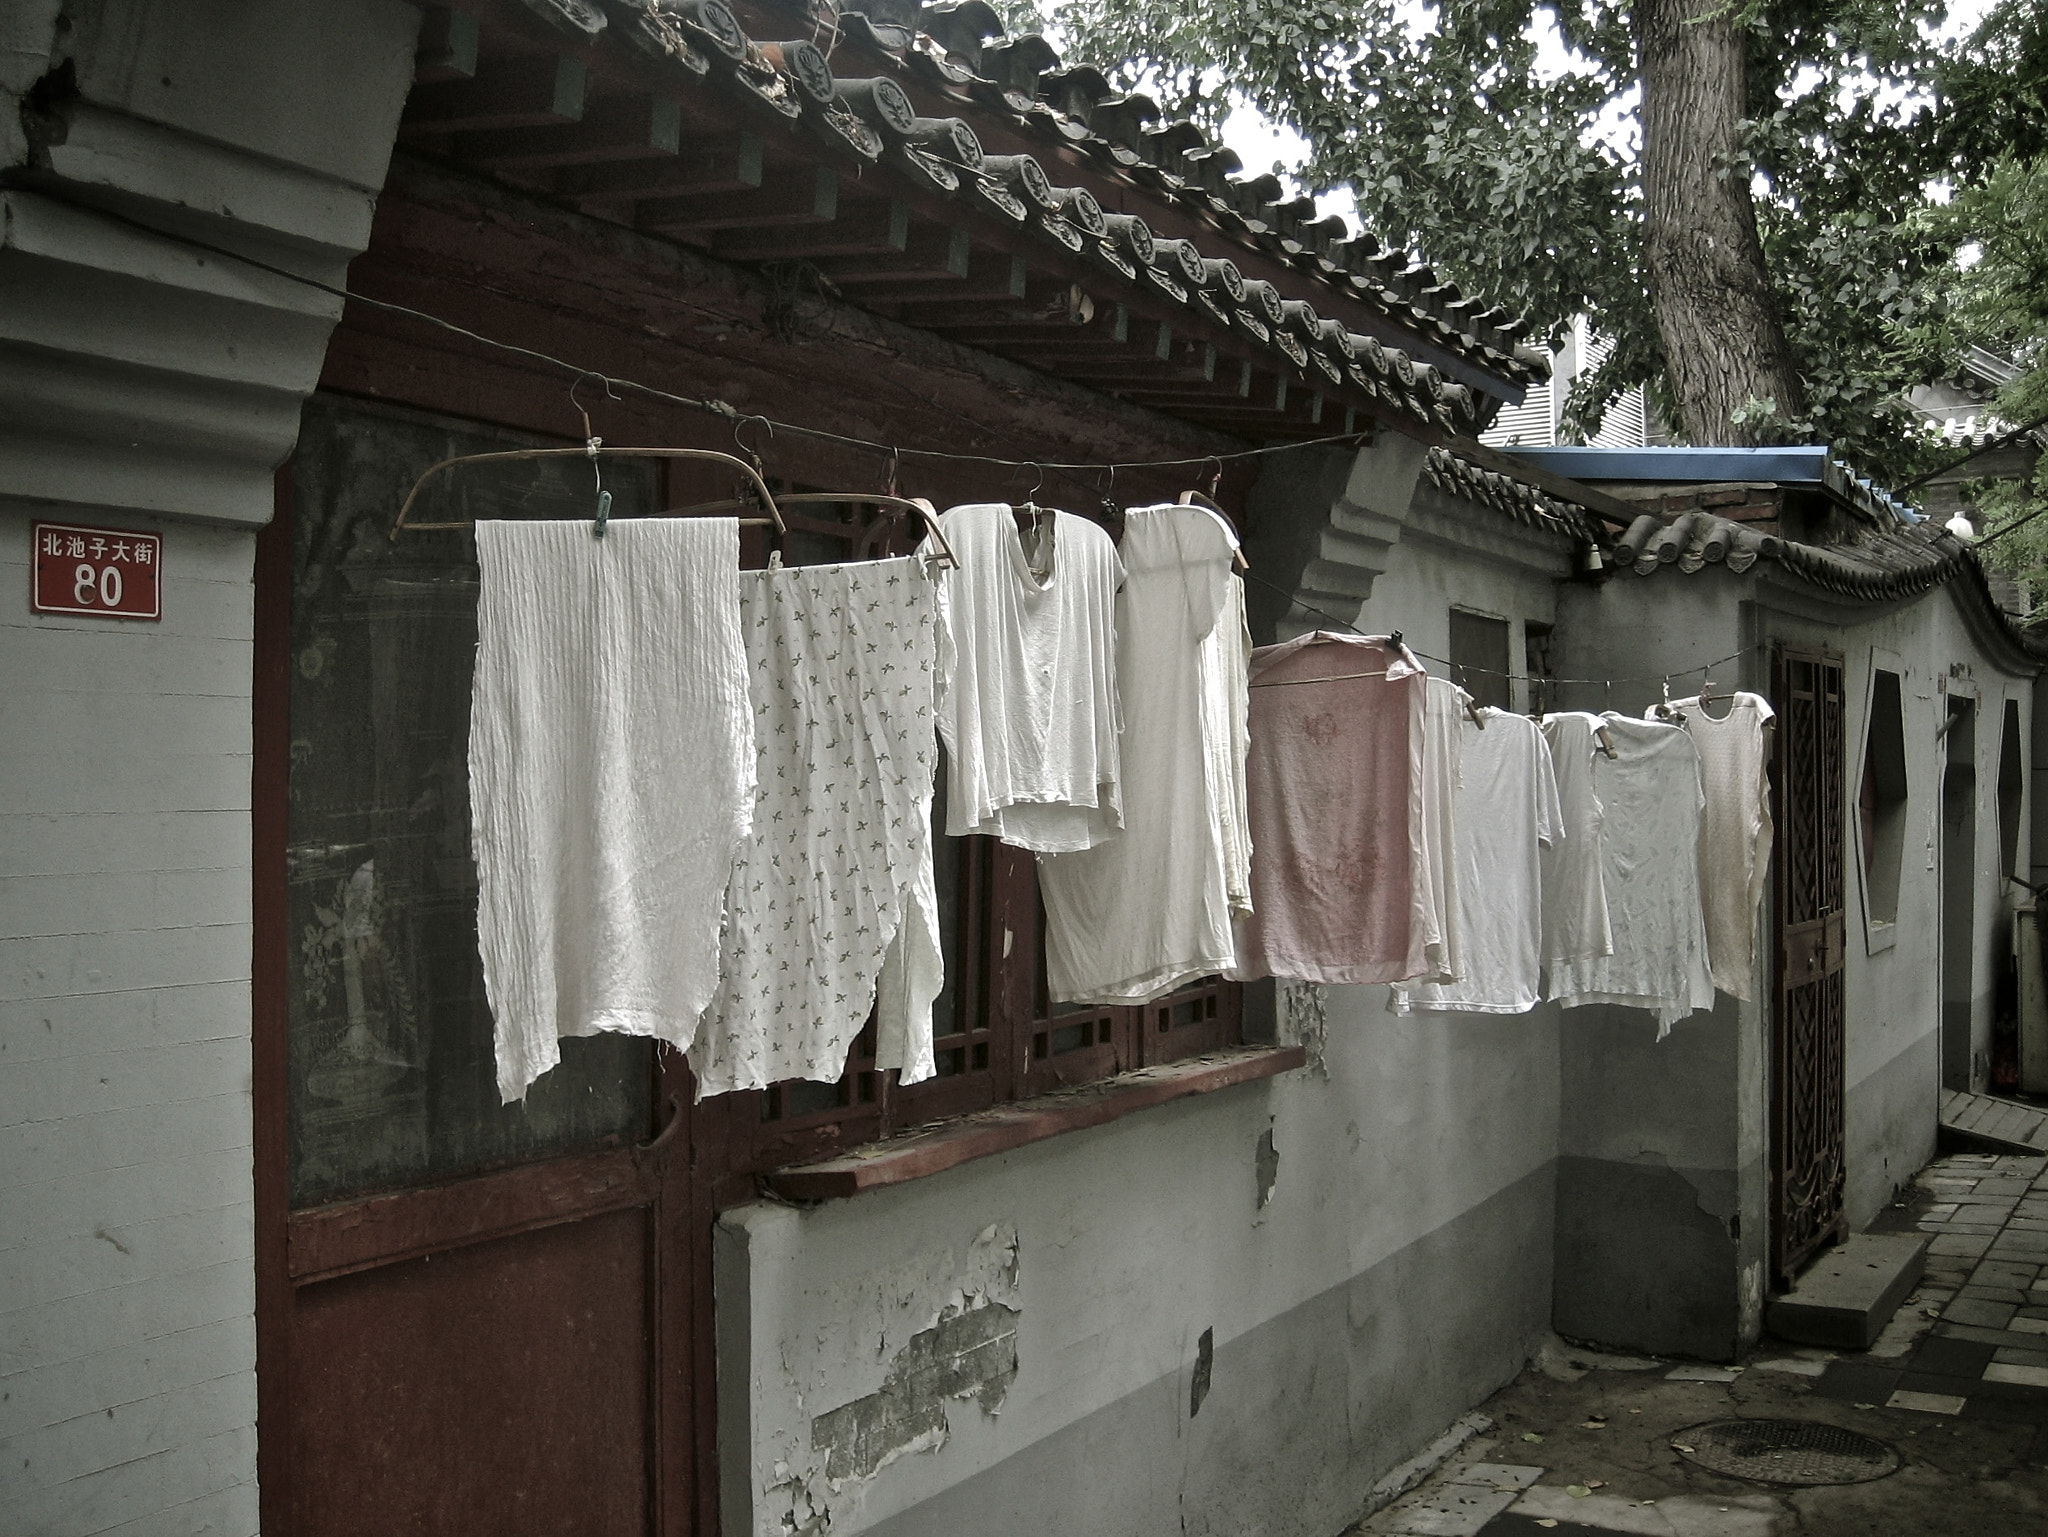 Photograph Laundry day by Jarno Dijkstra on 500px